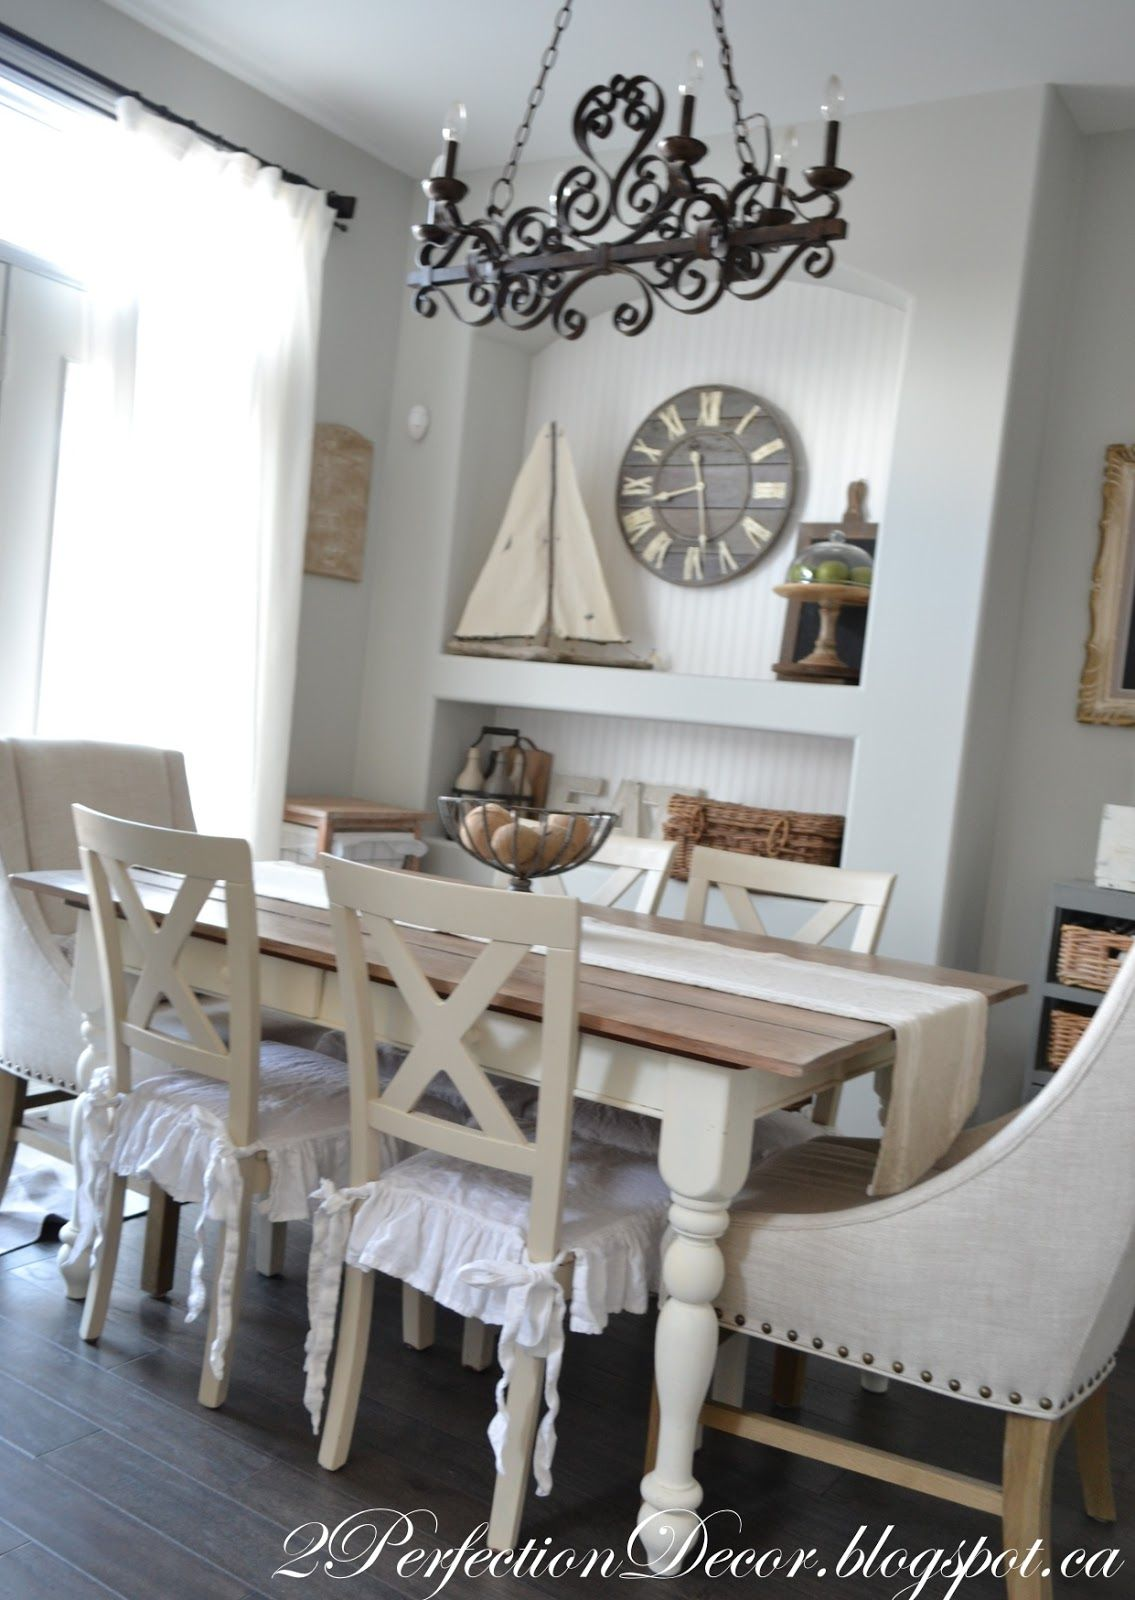 A Home Decor Blog Following Our Journey On Creating The Perfect Home For  Us. Features